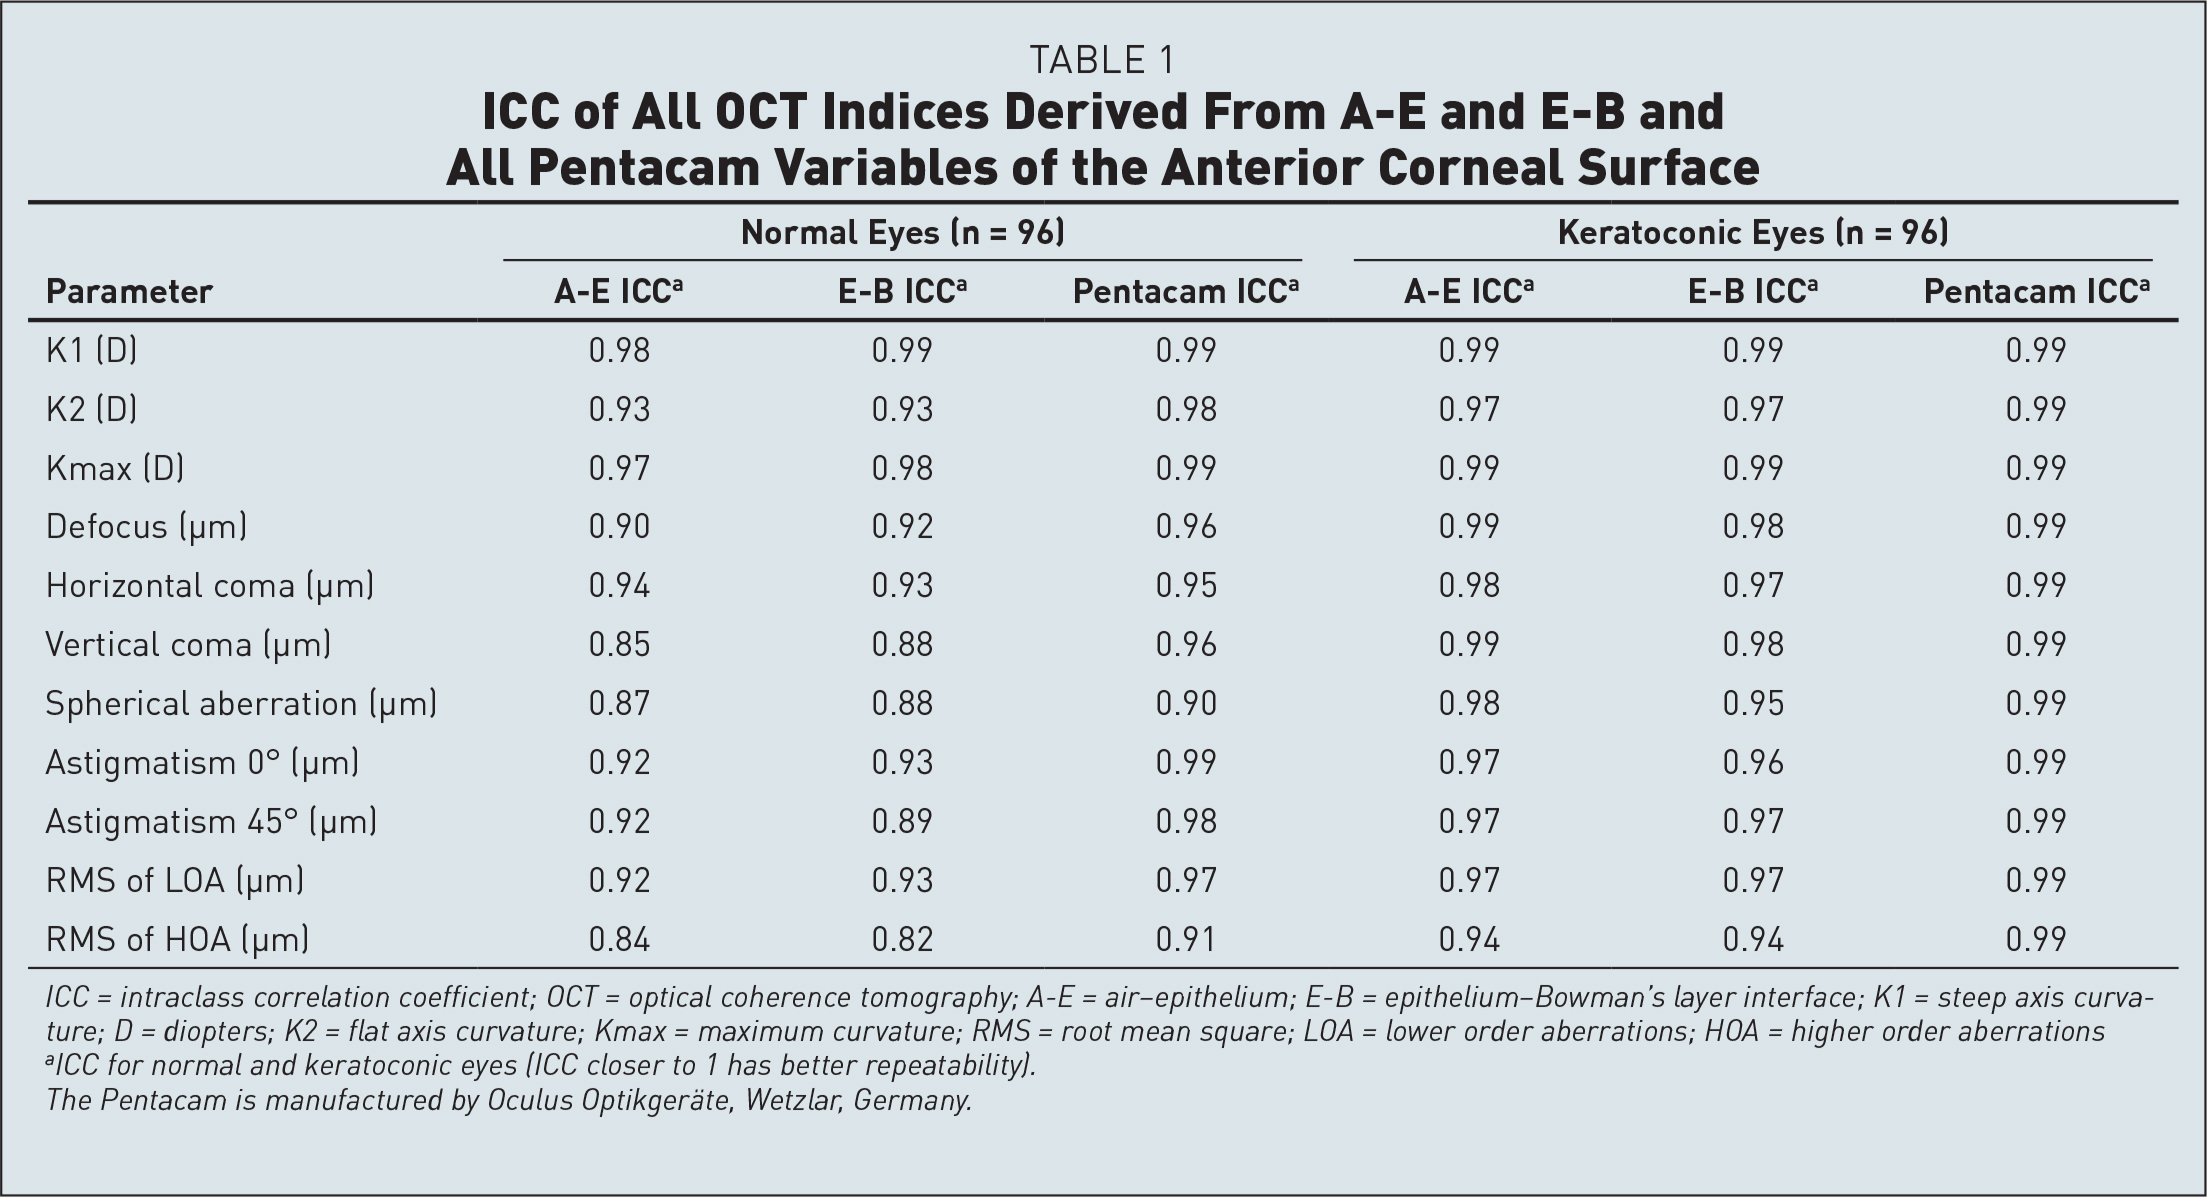 ICC of All OCT Indices Derived From A–E and E-B and All Pentacam Variables of the Anterior Corneal Surface